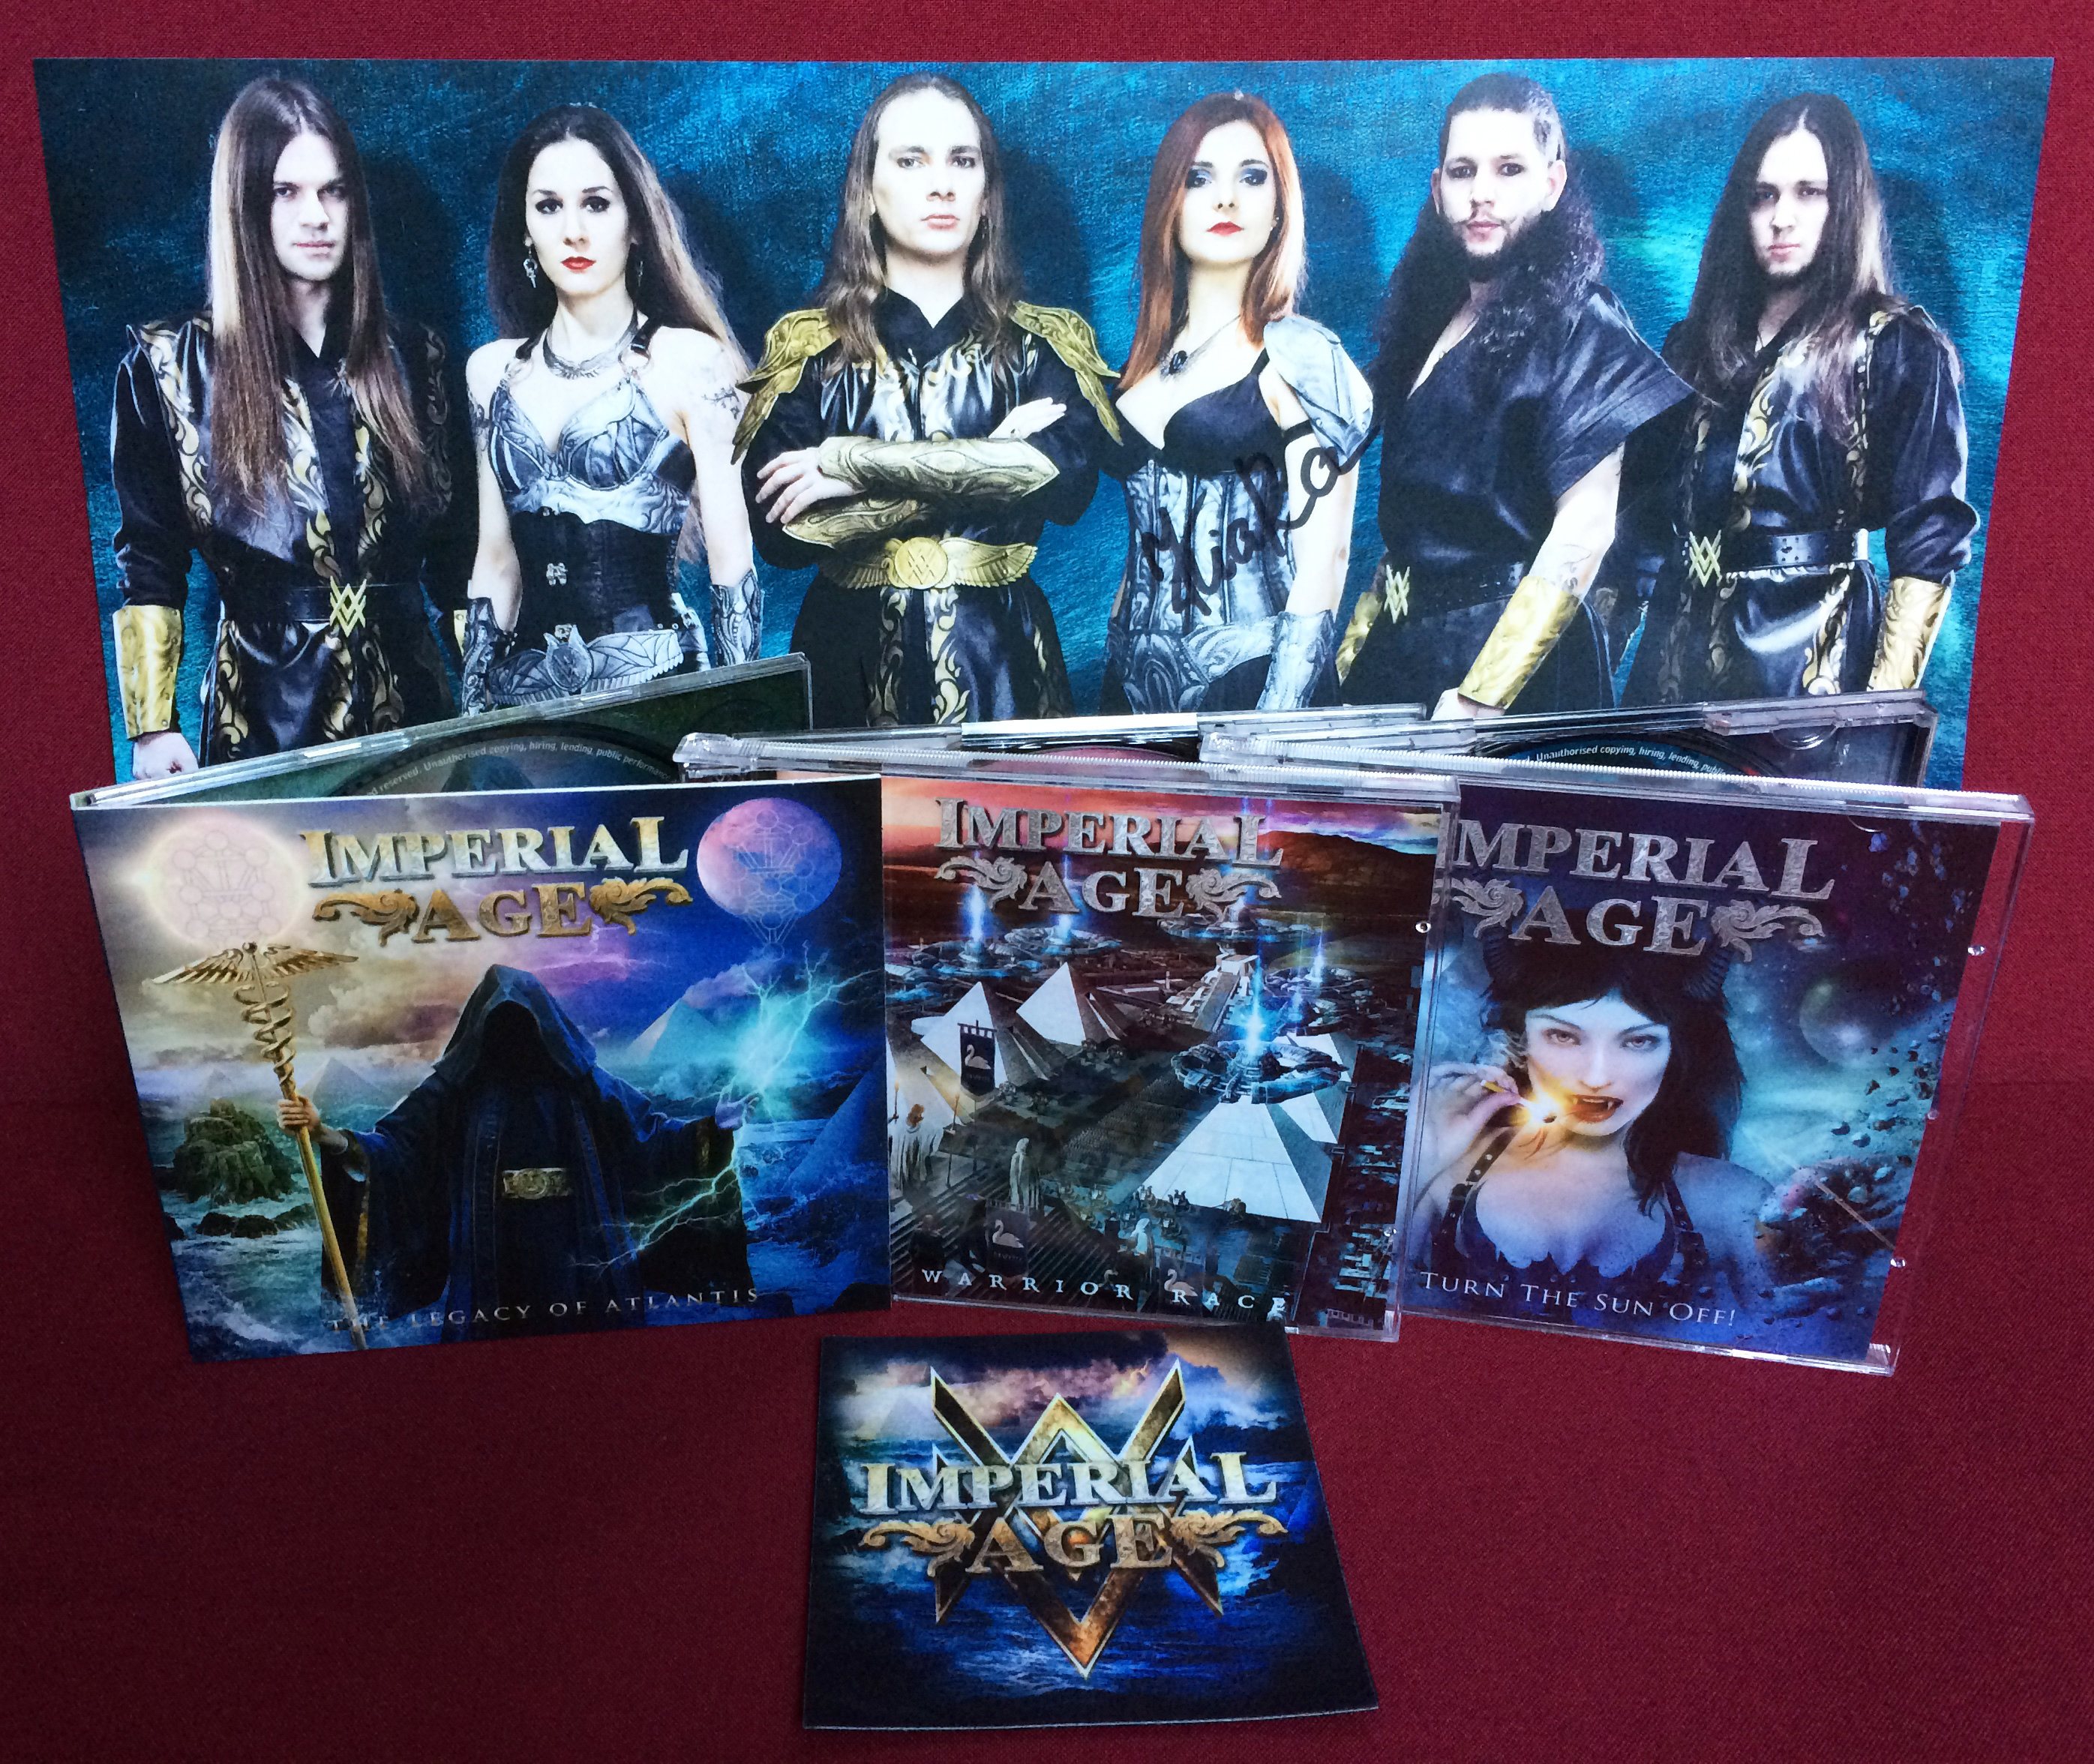 Special offer: 3 CDs, A3 poster and patch